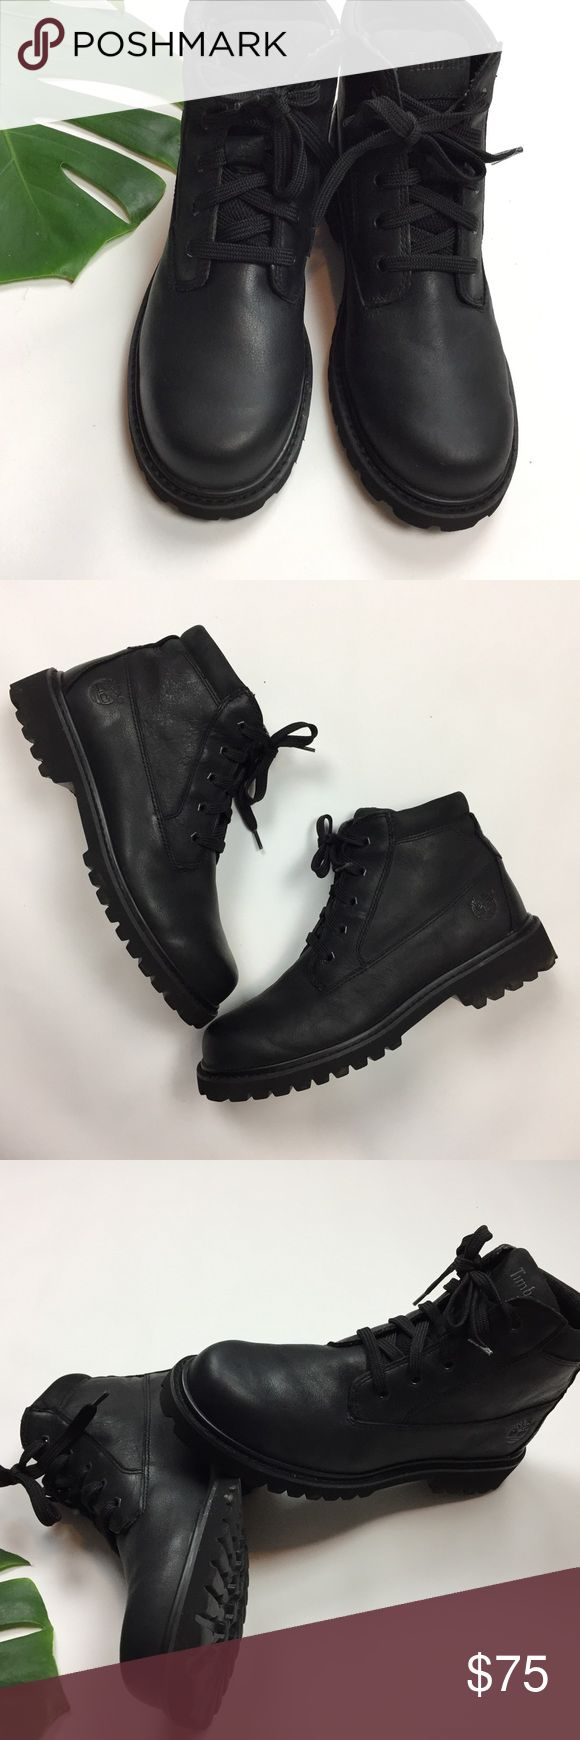 Timberland 🔥 Sz 9 black leather boots like new 6 inch premium all black leather high quality casual dress lace up Timberland boots in like new condition. Features soft leather exterior.    Streetwear urban fashion cool style Timberland Shoes Boots